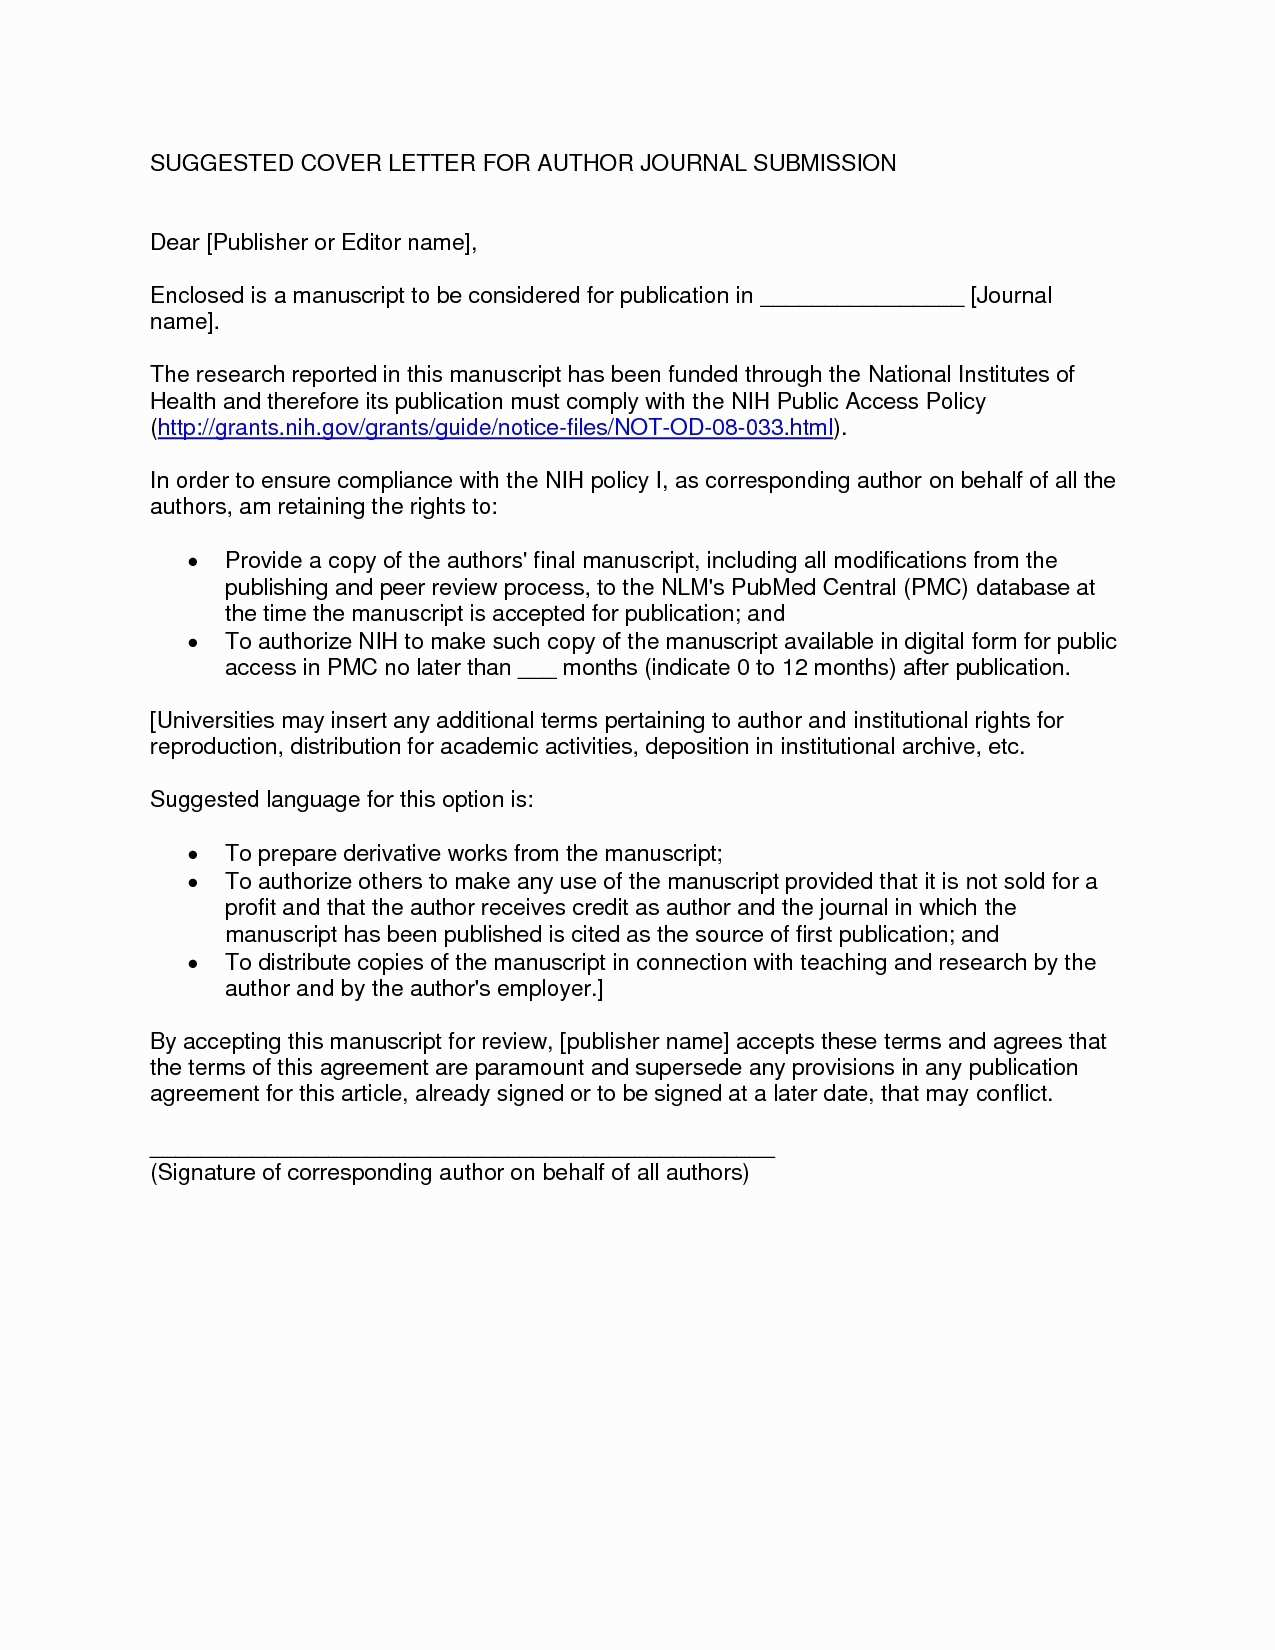 Non Disclosure Letter Template - Free Non Disclosure Agreement Template Fresh formal Rebuttal Letter